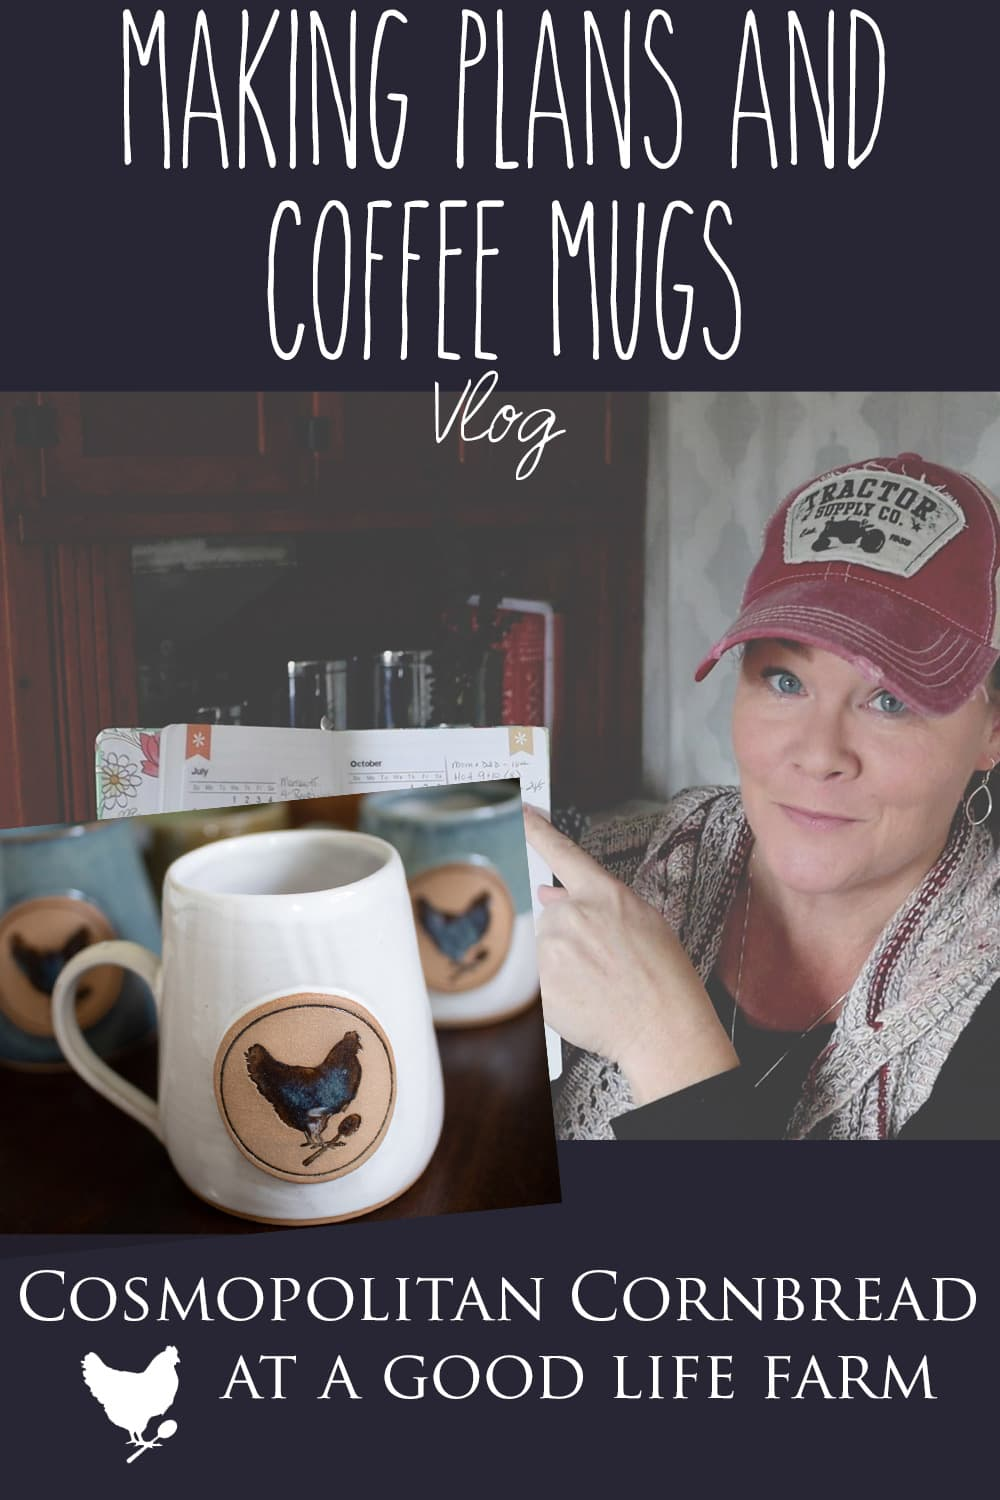 I shared a few plans I have moving forward as well as asked for your input on something. Also - an update on the coffee mugs!